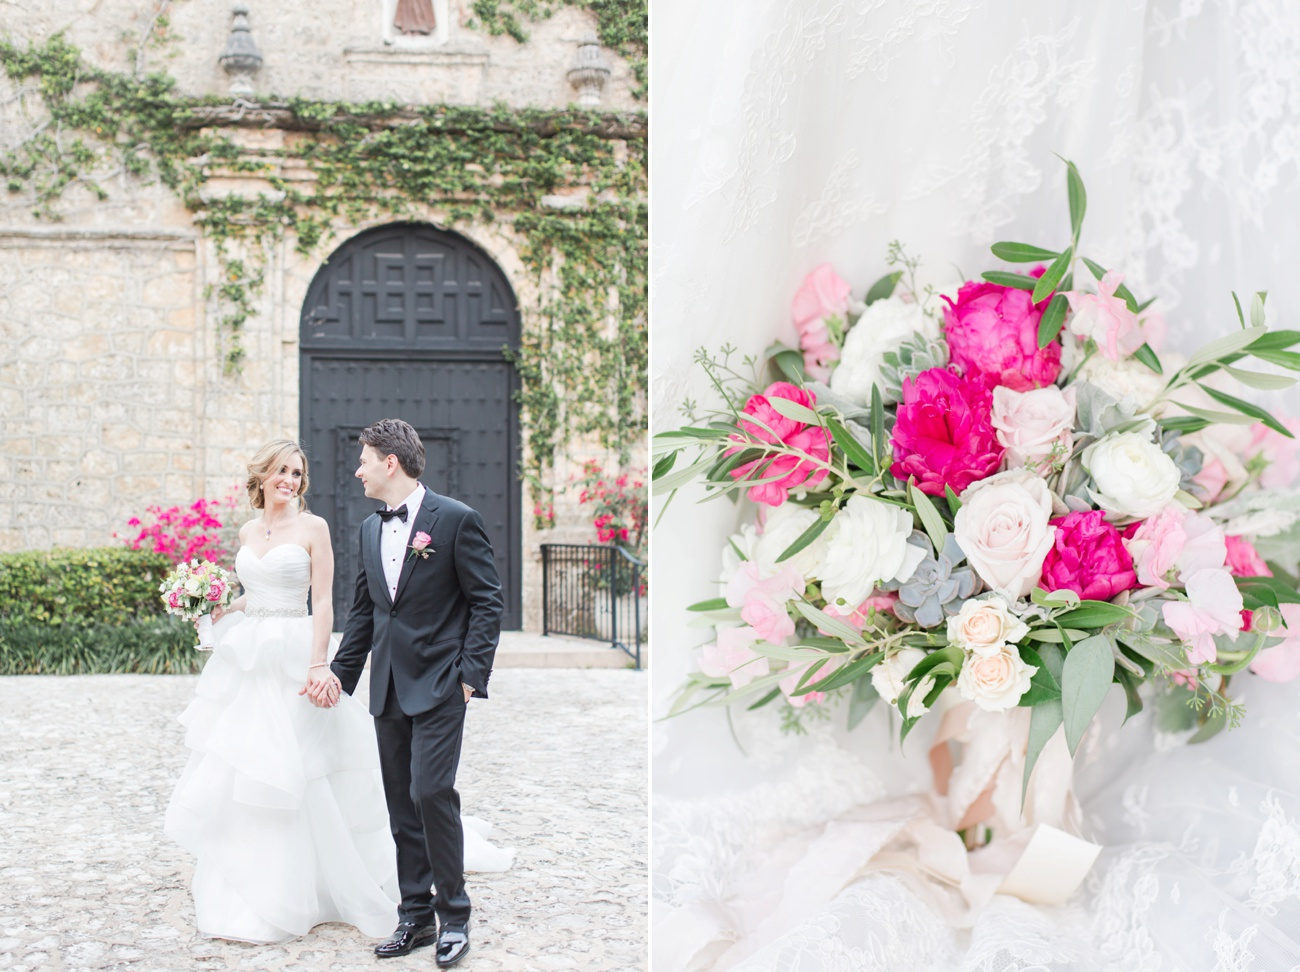 View More: http://camillecatherine.pass.us/elyse-todor-wedding